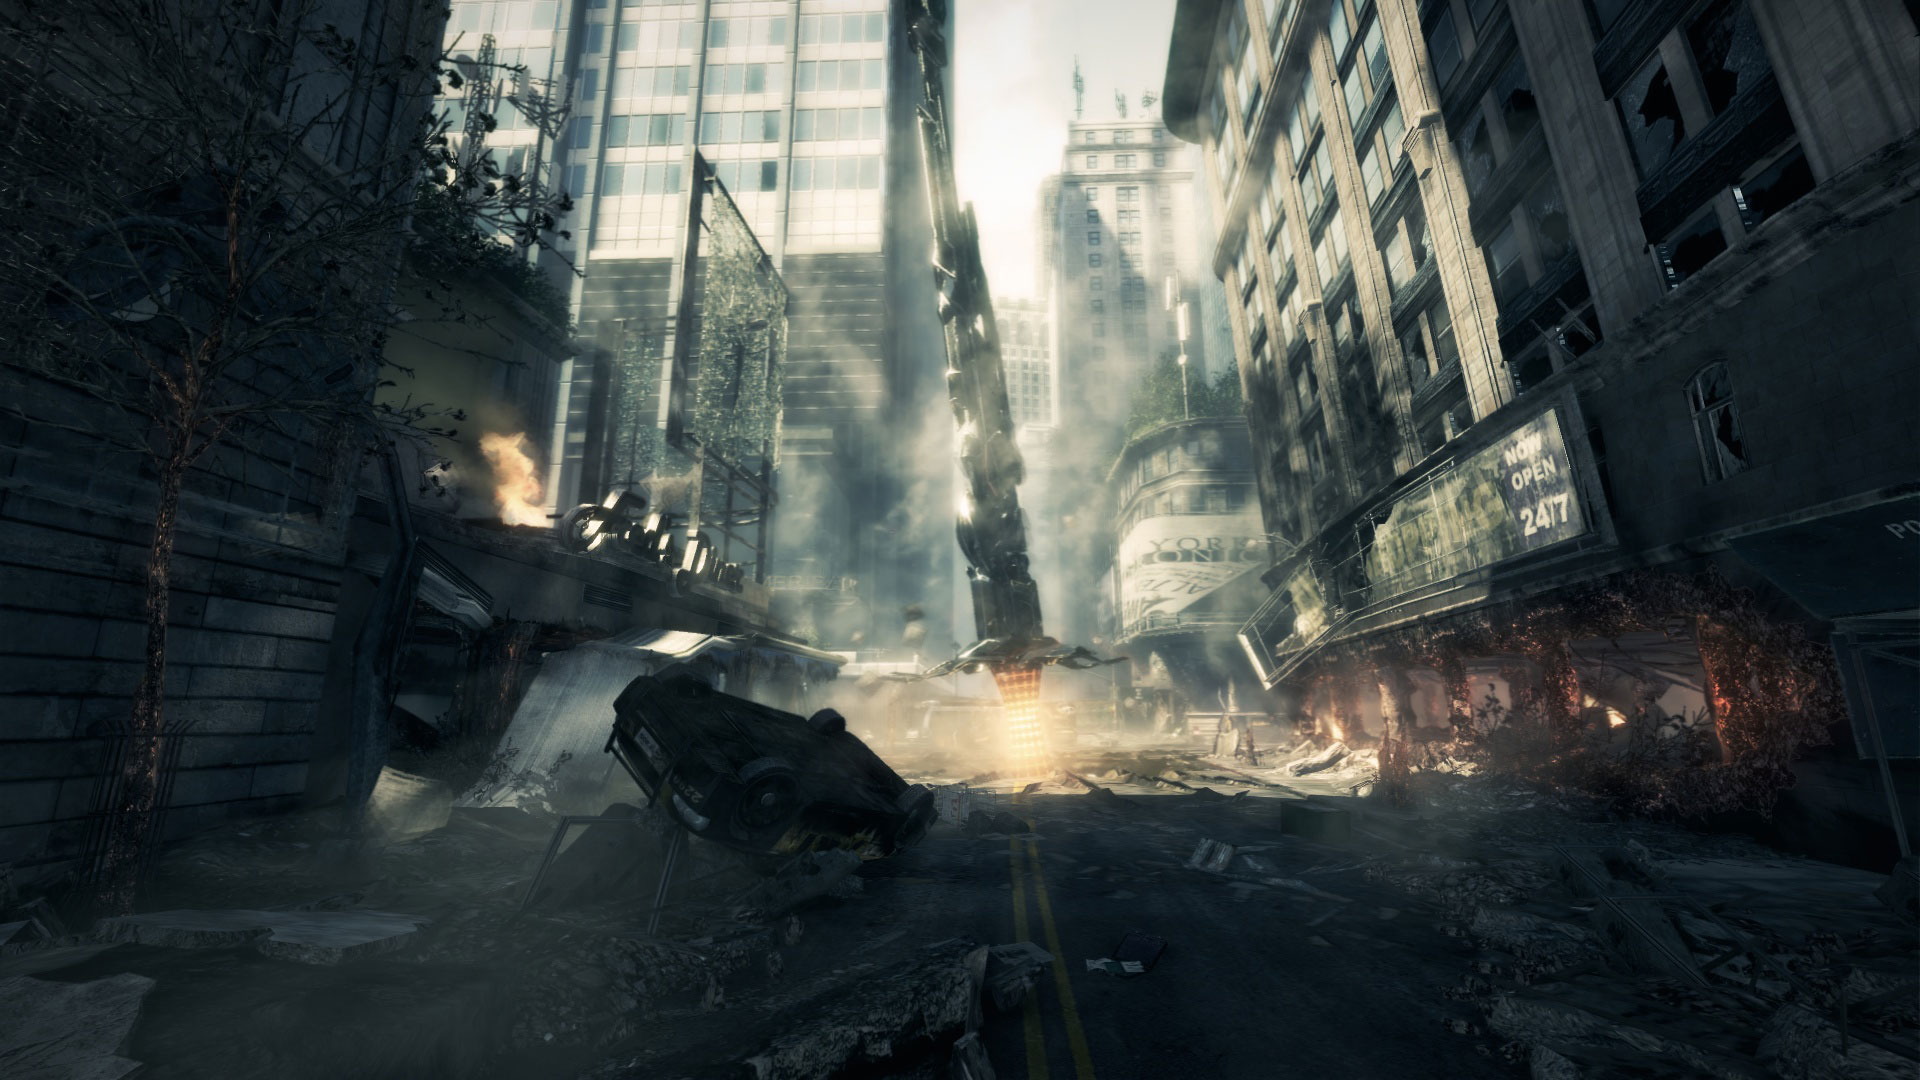 http://www.thewallpapers.org/photo/43540/Crysis-2-013.jpg